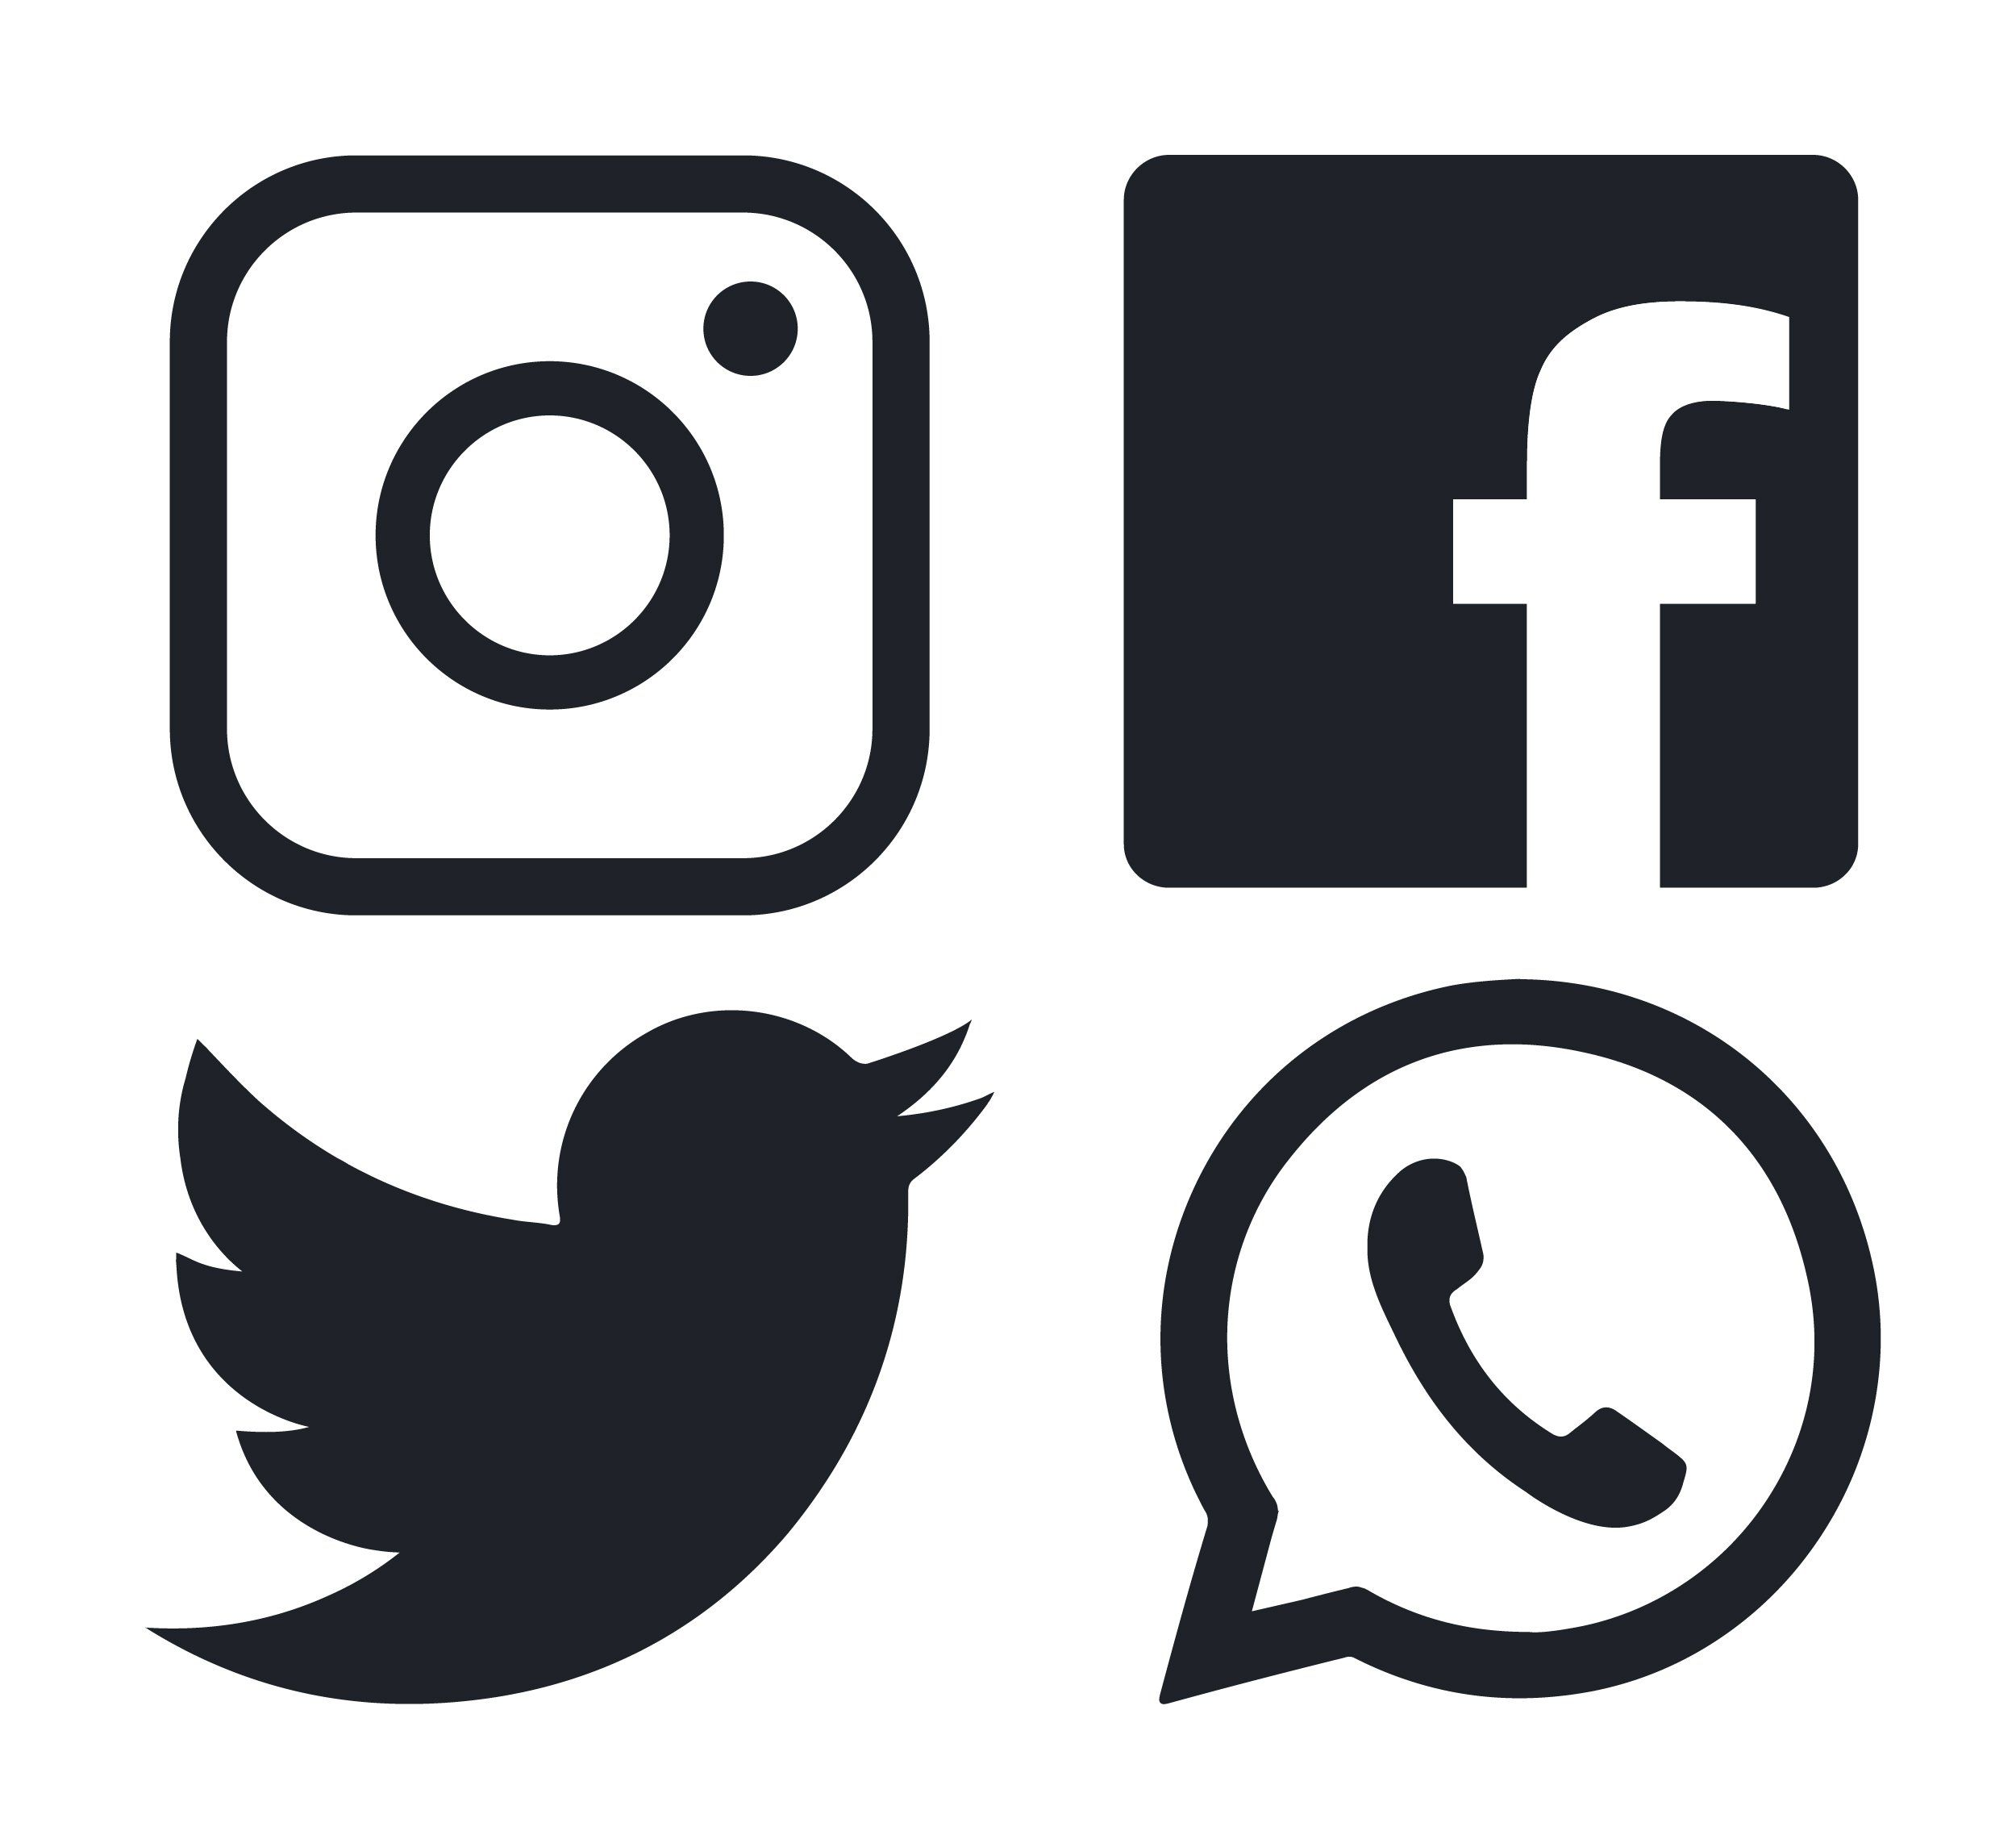 Facebook, Twitter and Instagram logo Instagram logo